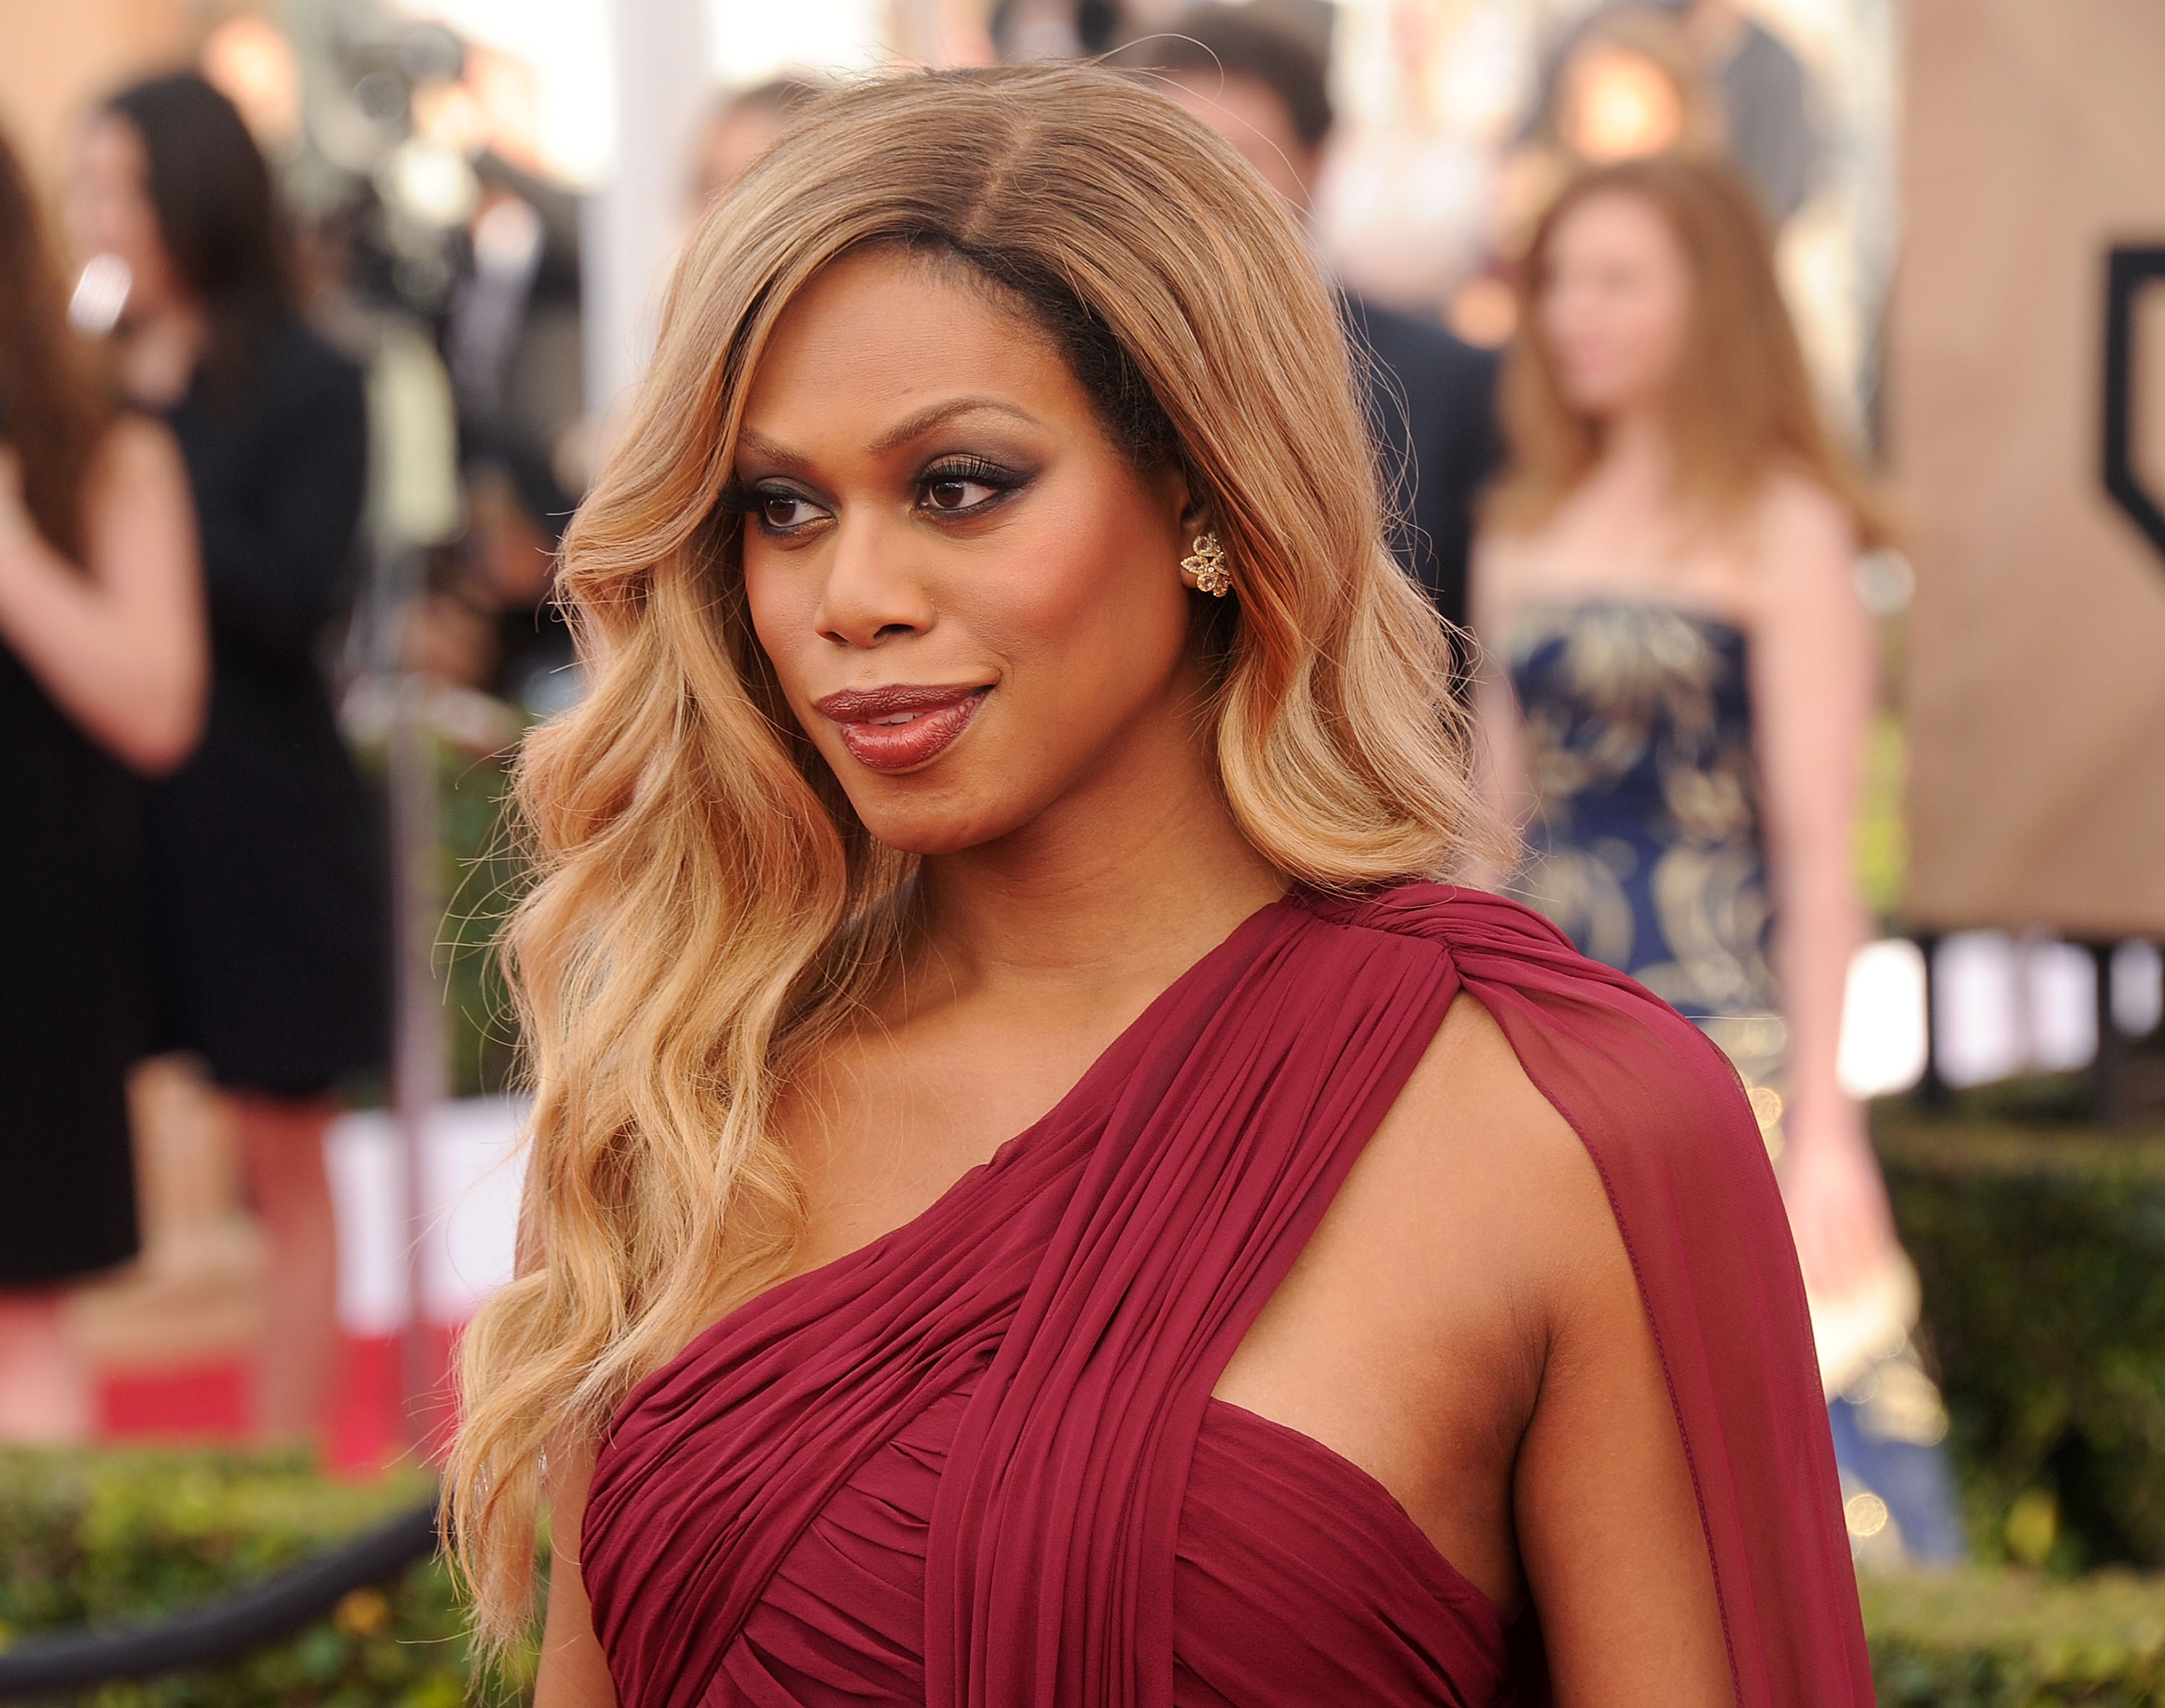 Actress Laverne Cox arrives at the 22nd Annual Screen Actors Guild Awards at The Shrine Auditorium on January 30, 2016 in Los Angeles, California.